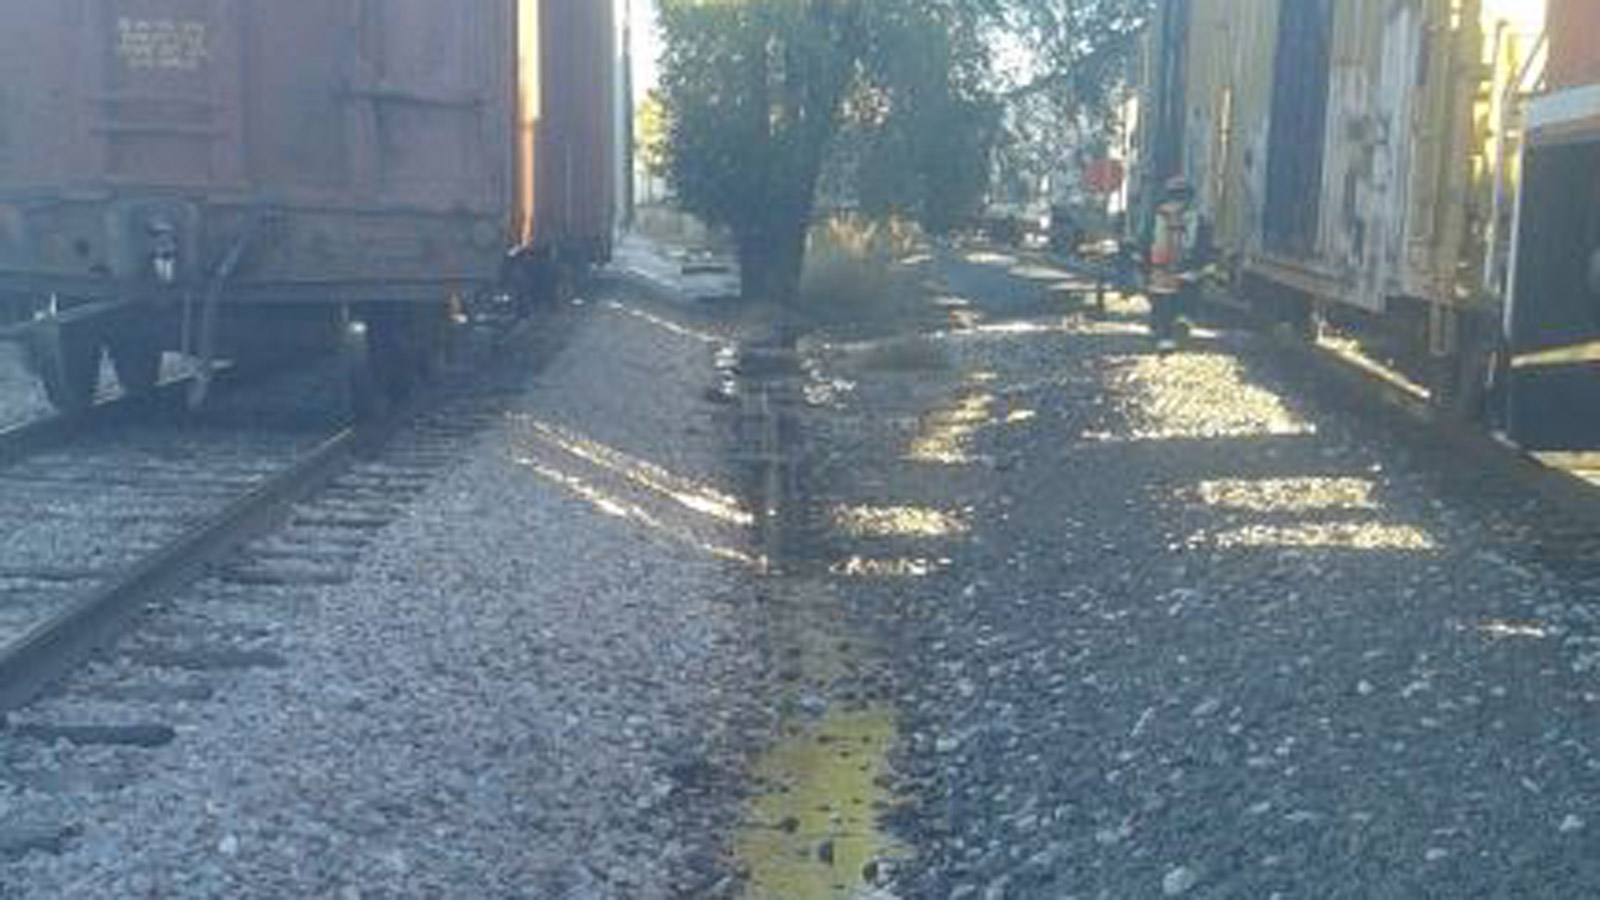 Diesel fuel from a locomotive tank in Fort Collins (credit: Poudre Fire Authority)